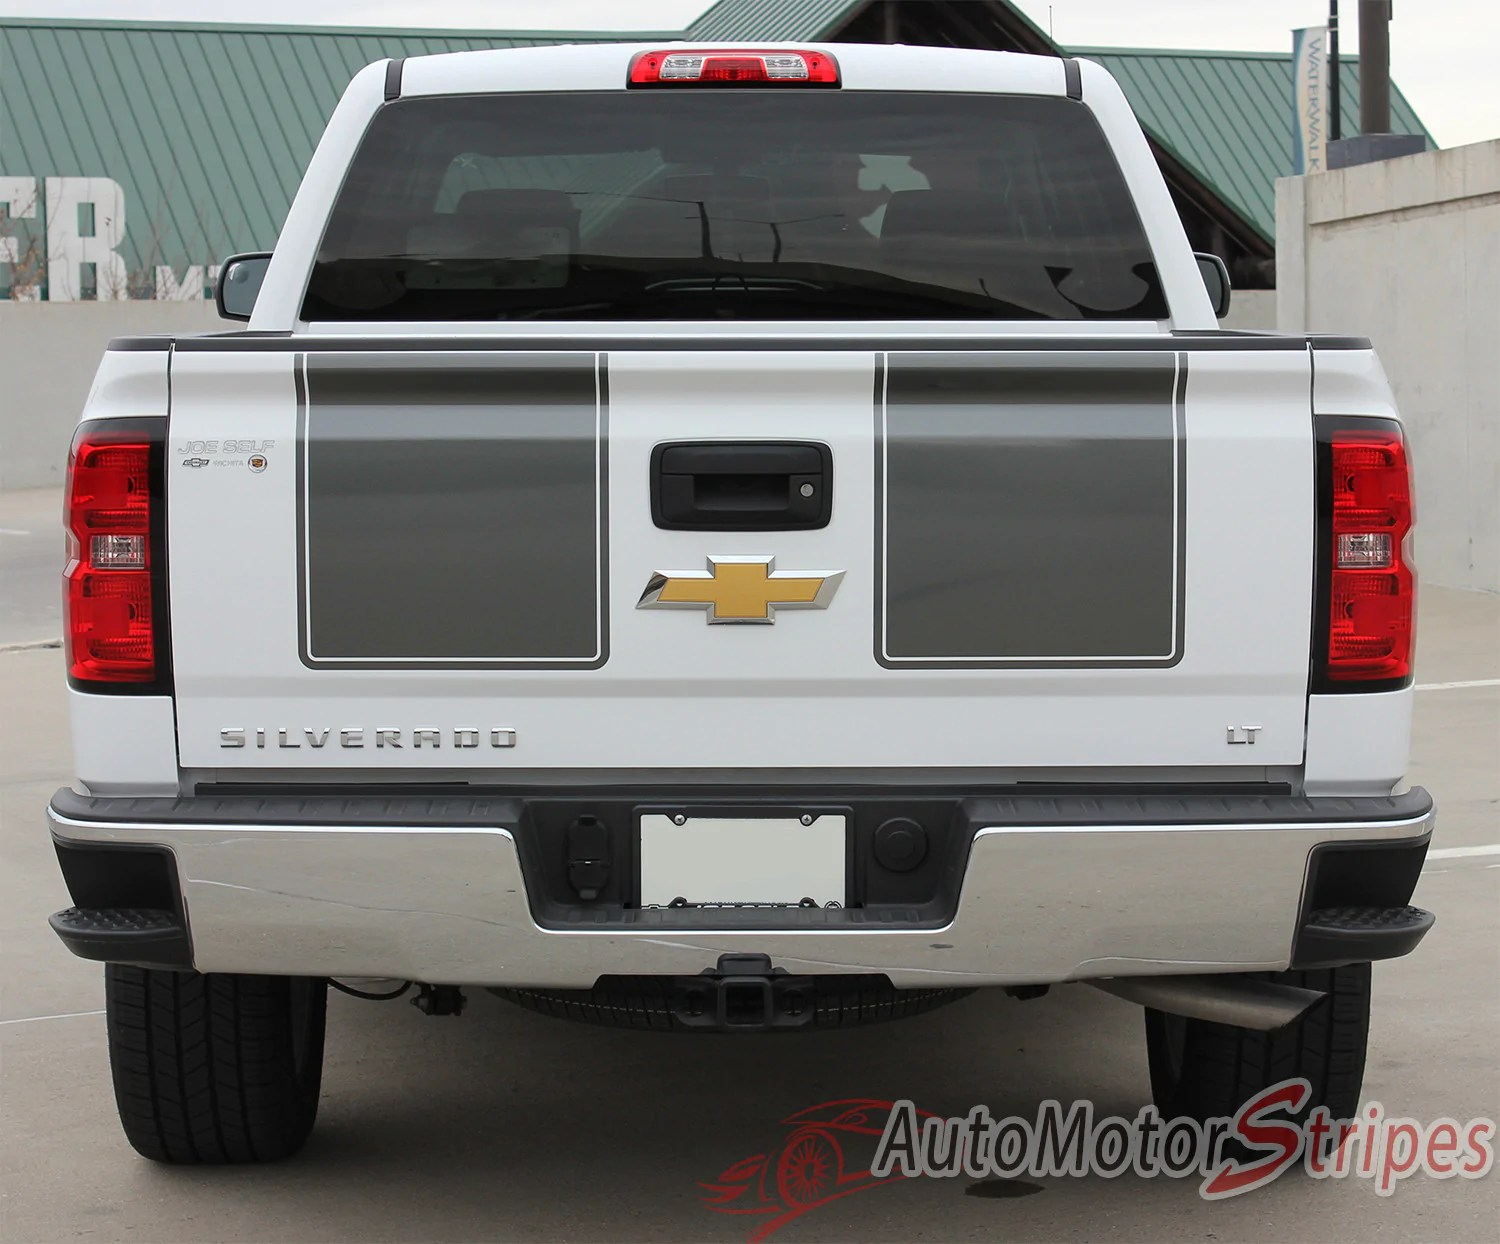 2014 2015 chevy silverado 1500 rally edition style truck racing vinyl graphics 3m stripes kit [ 1500 x 1244 Pixel ]